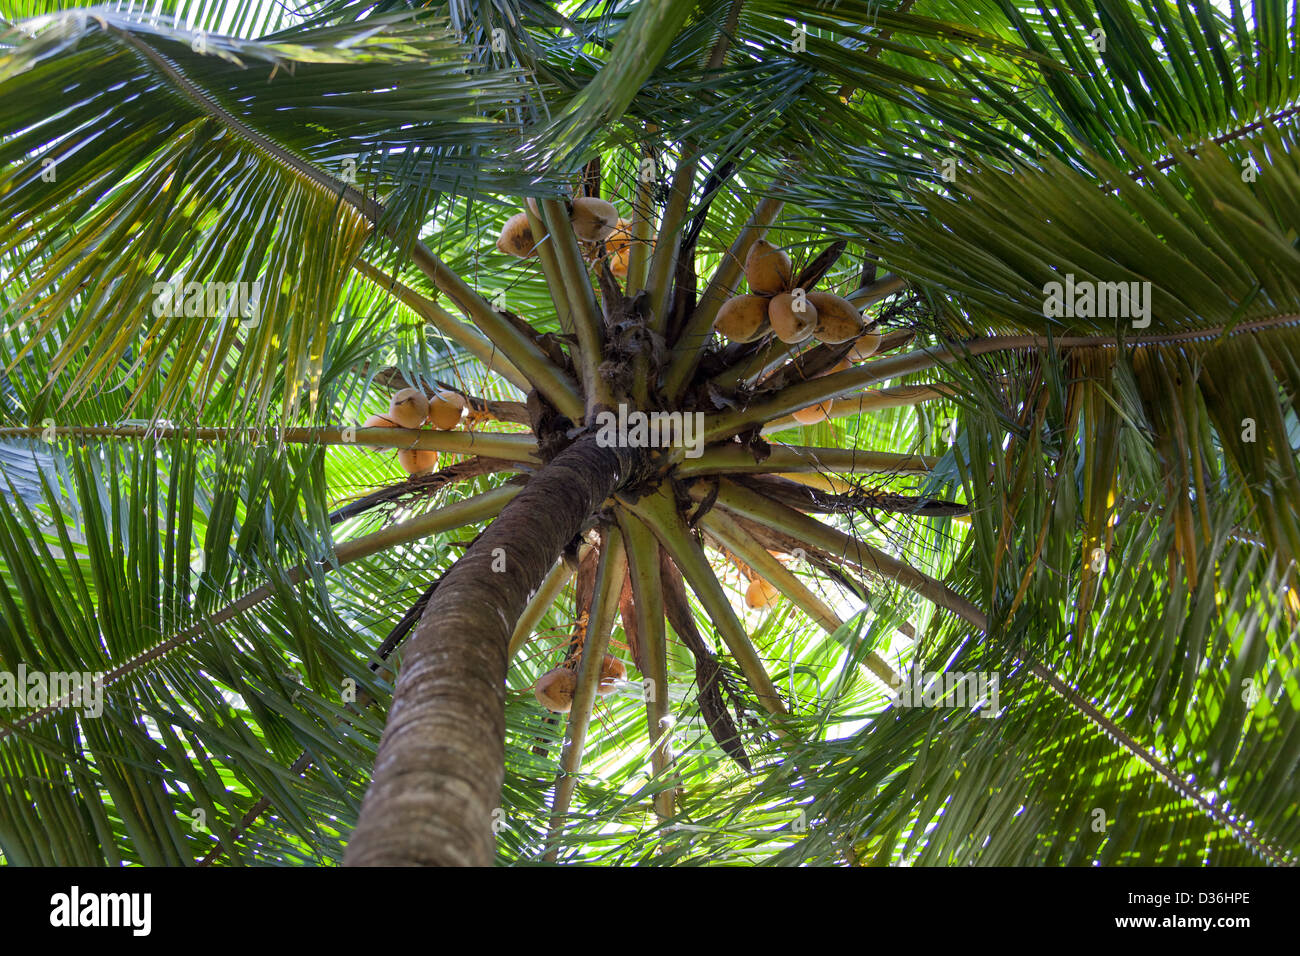 Palm Treetop from Below - Stock Image